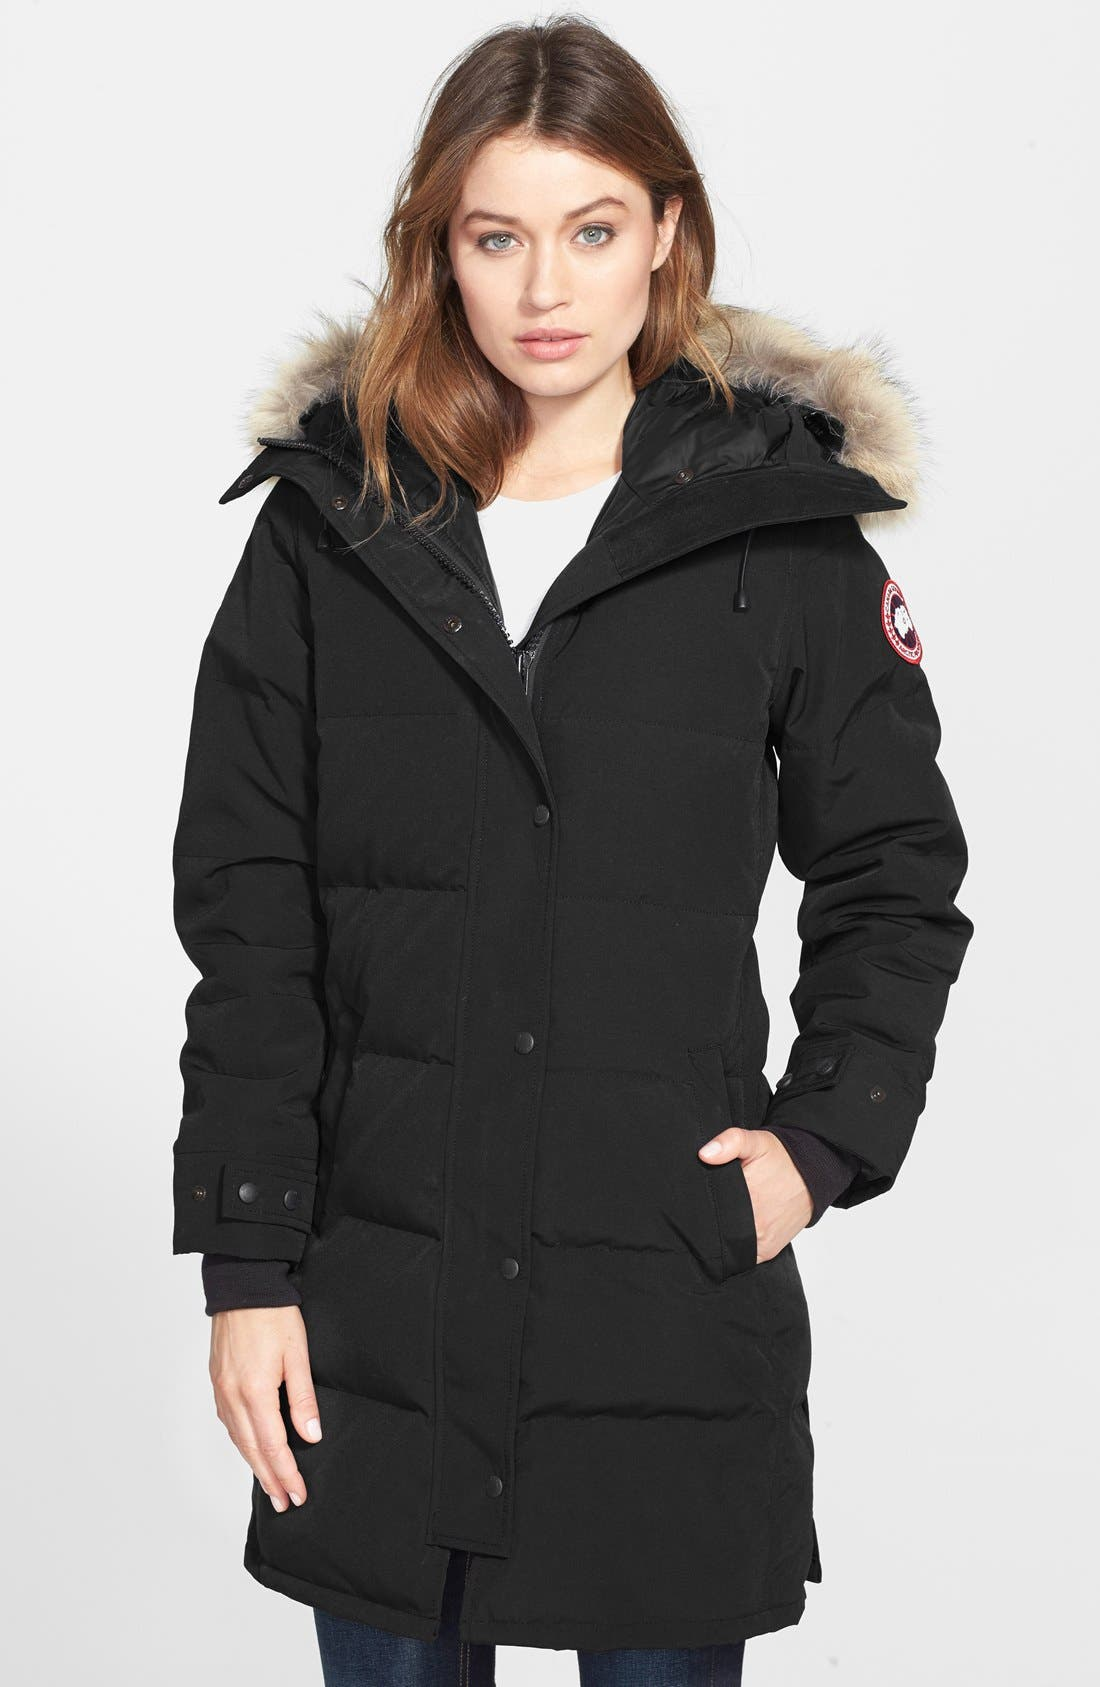 Women's Black Coats & Jackets: Puffer & Down | Nordstrom